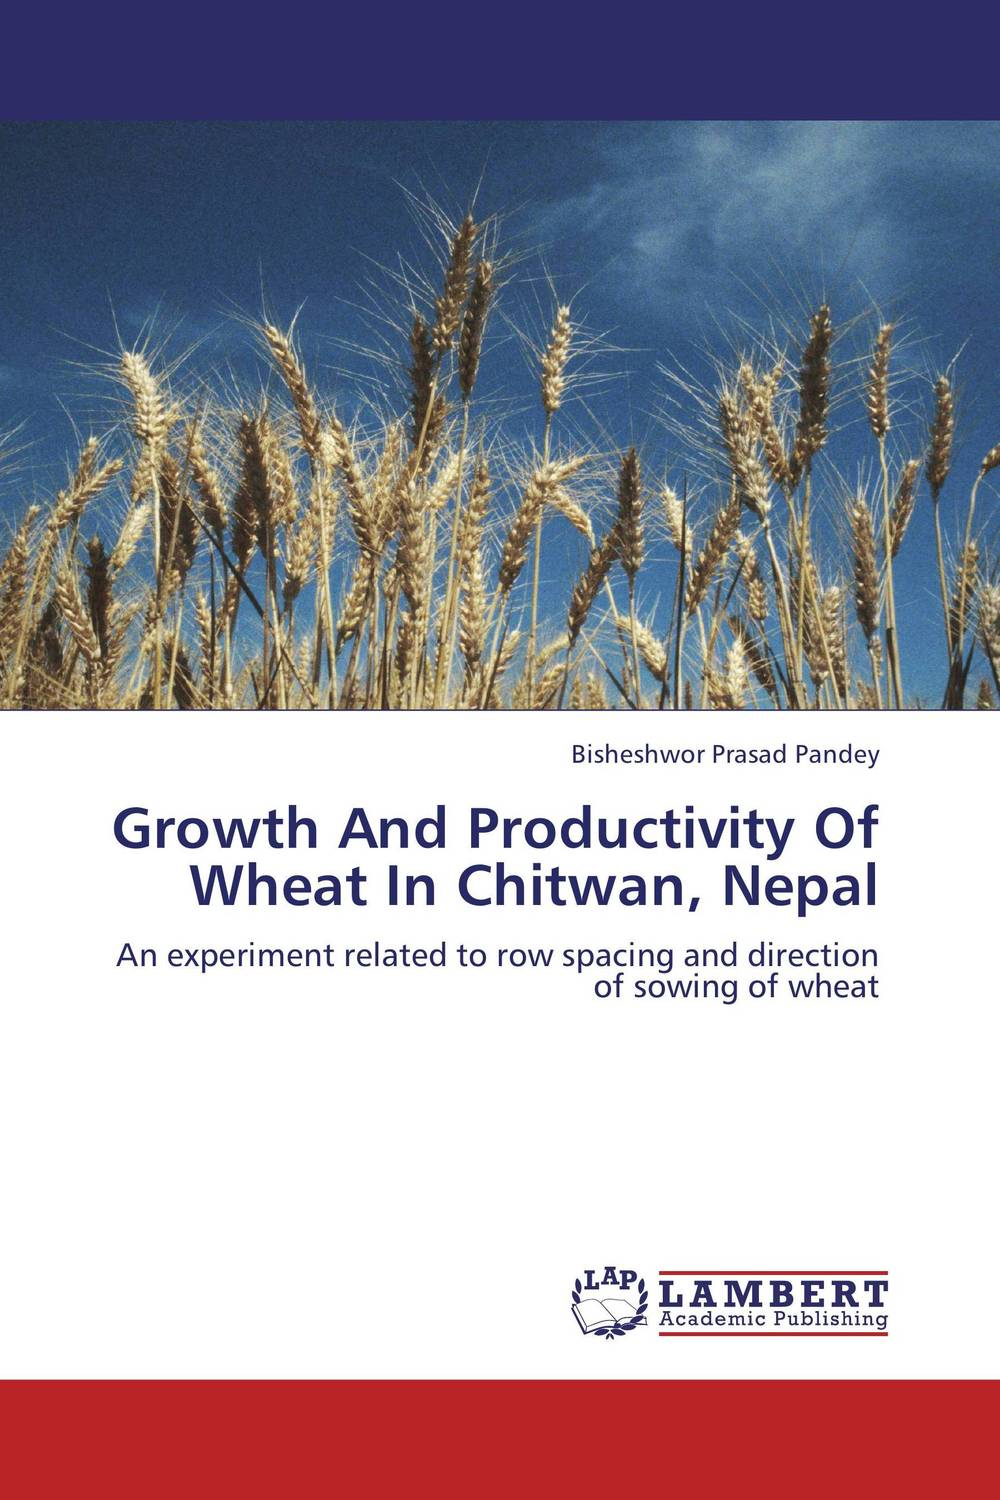 Growth And Productivity Of Wheat In Chitwan, Nepal purnima sareen sundeep kumar and rakesh singh molecular and pathological characterization of slow rusting in wheat